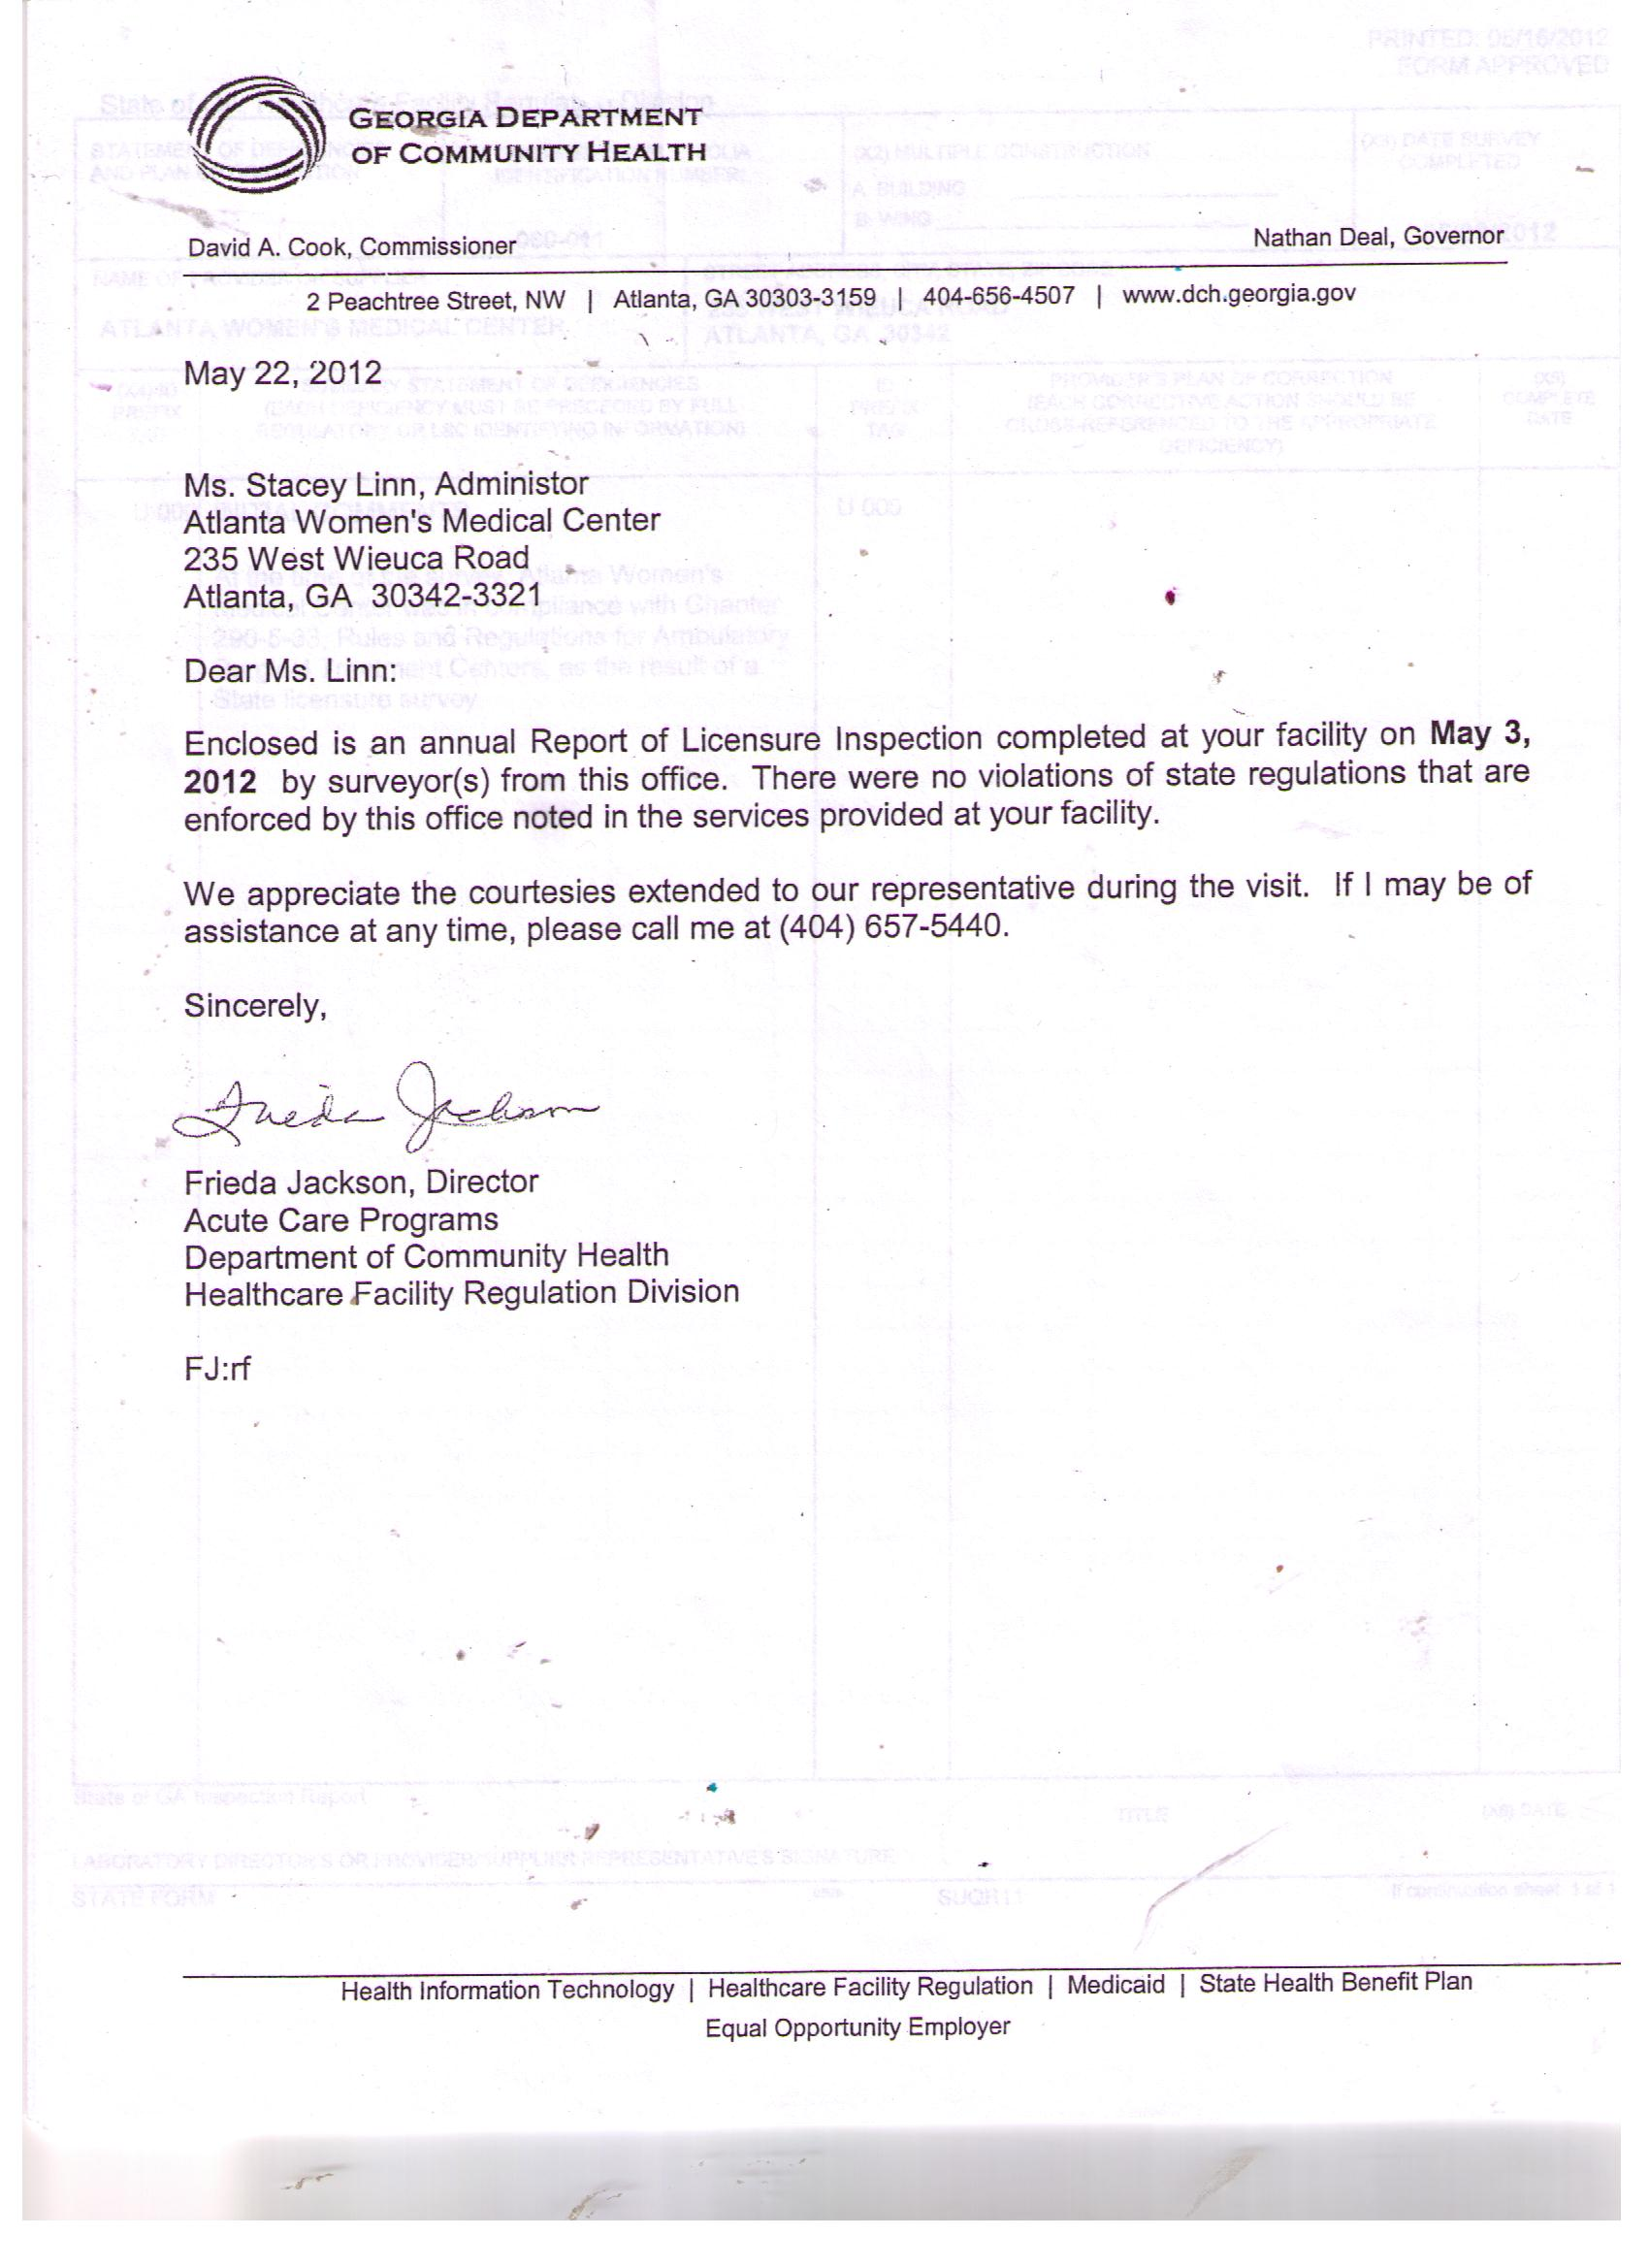 May 22,2012 letter to Atlanta Womens Medical Center from the State